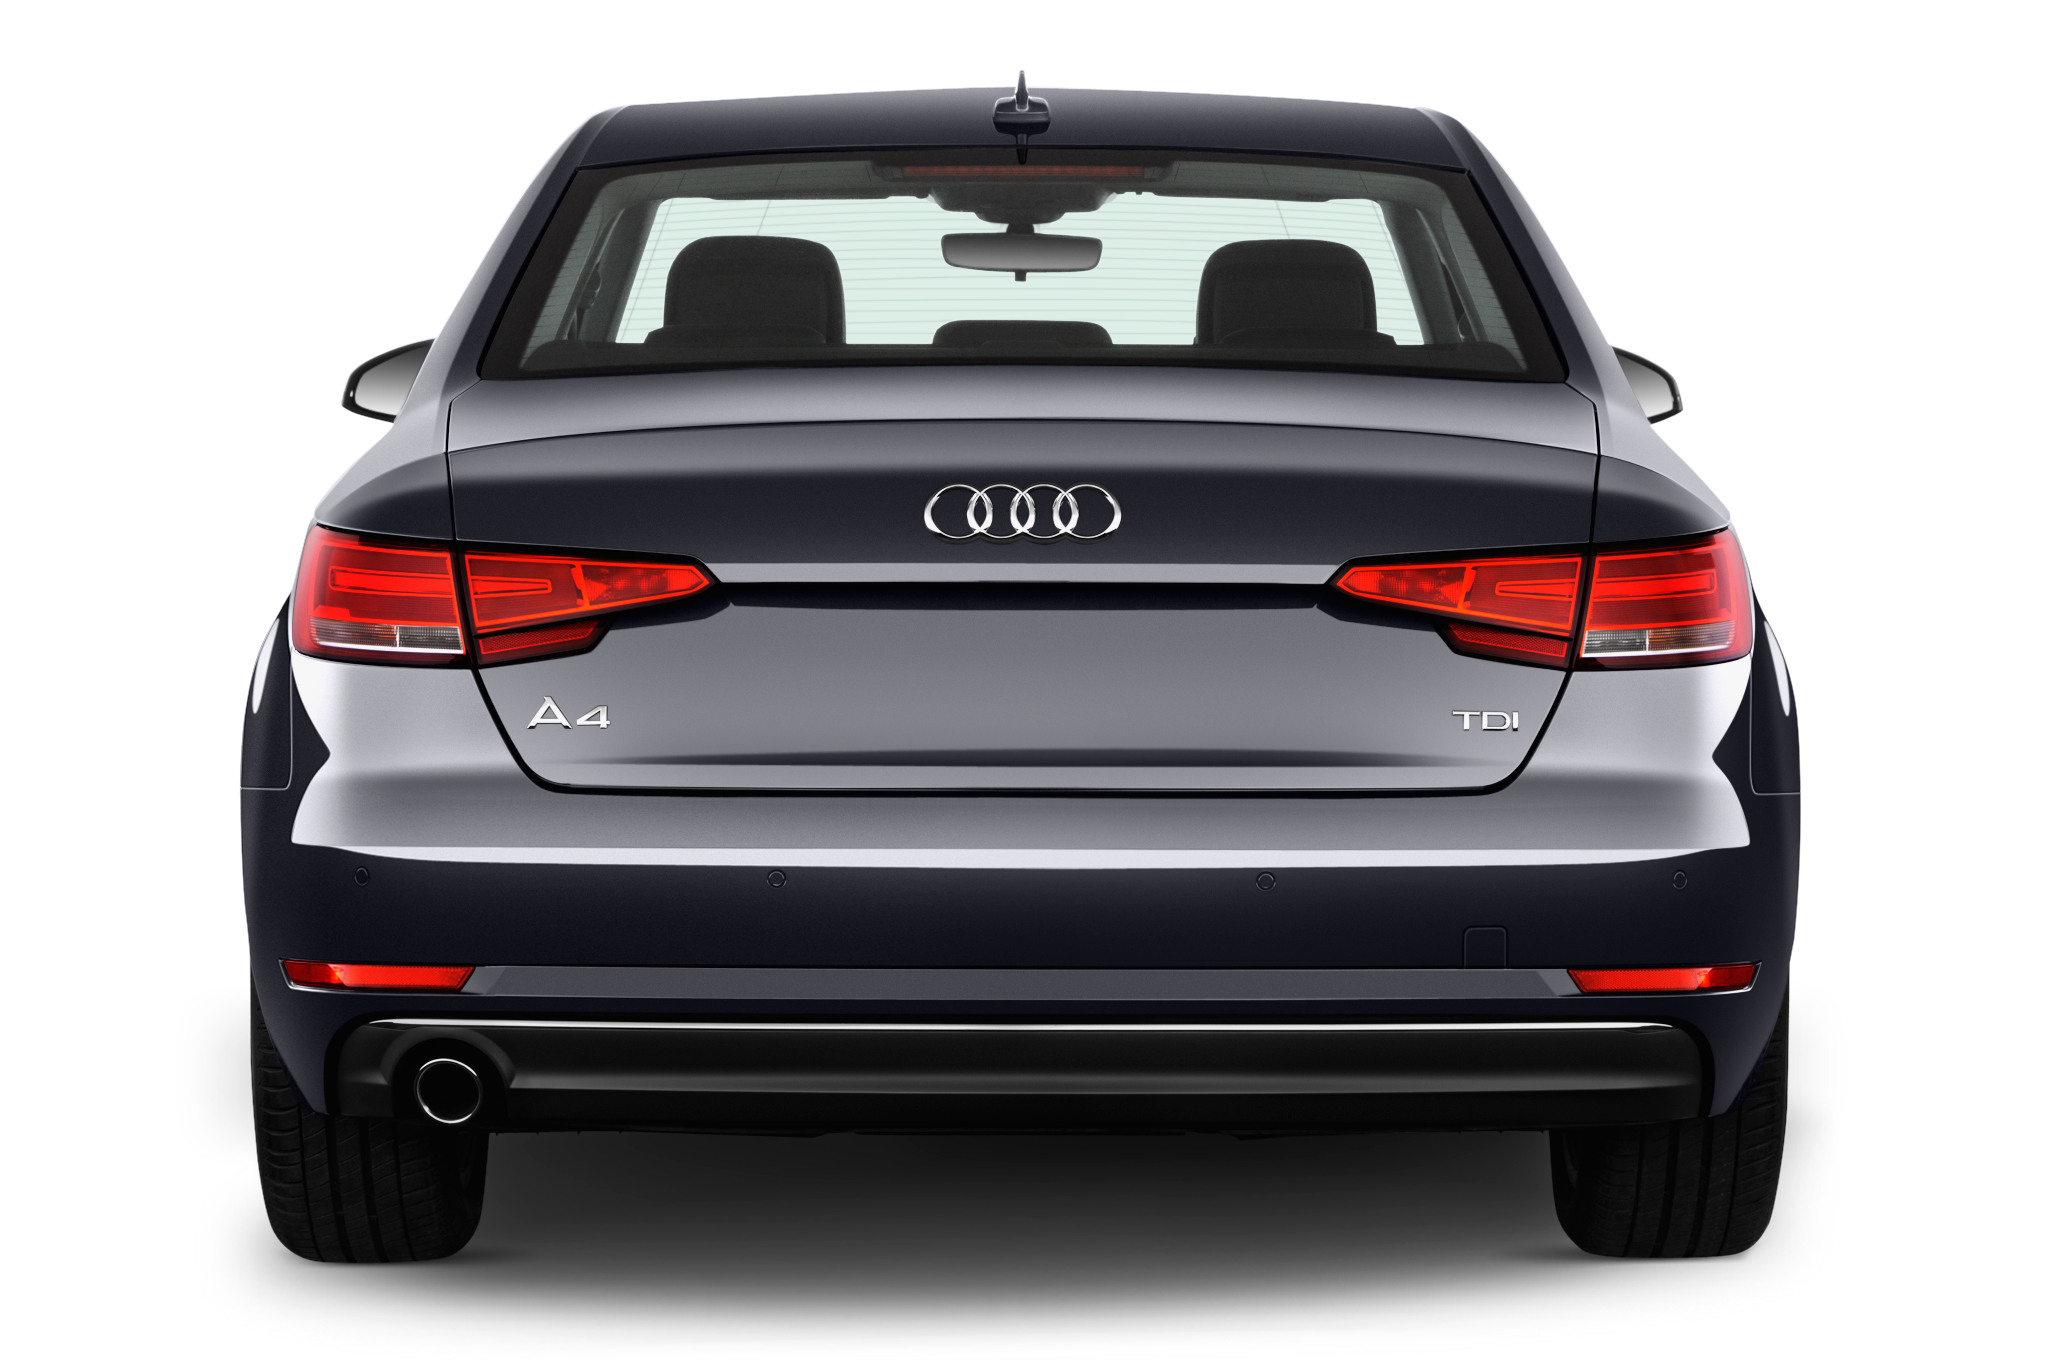 audi a4 saloon rear view